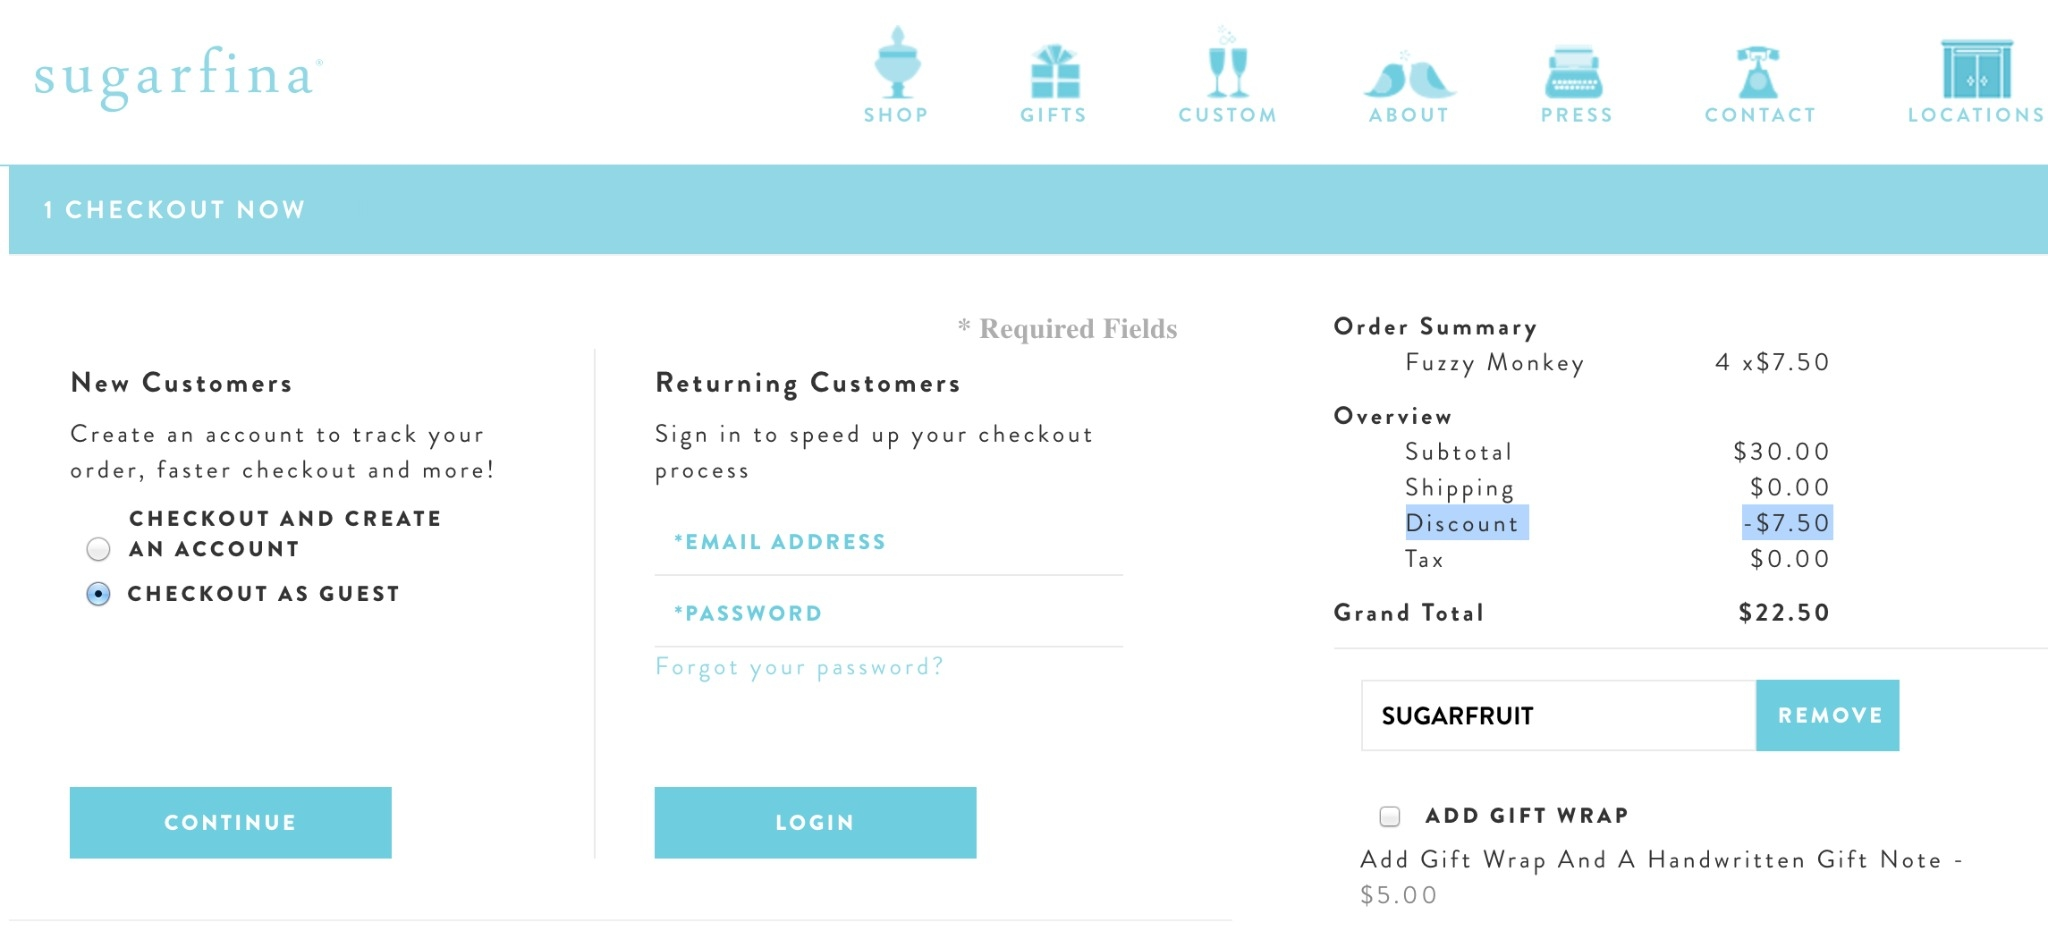 Sugarfina coupon code